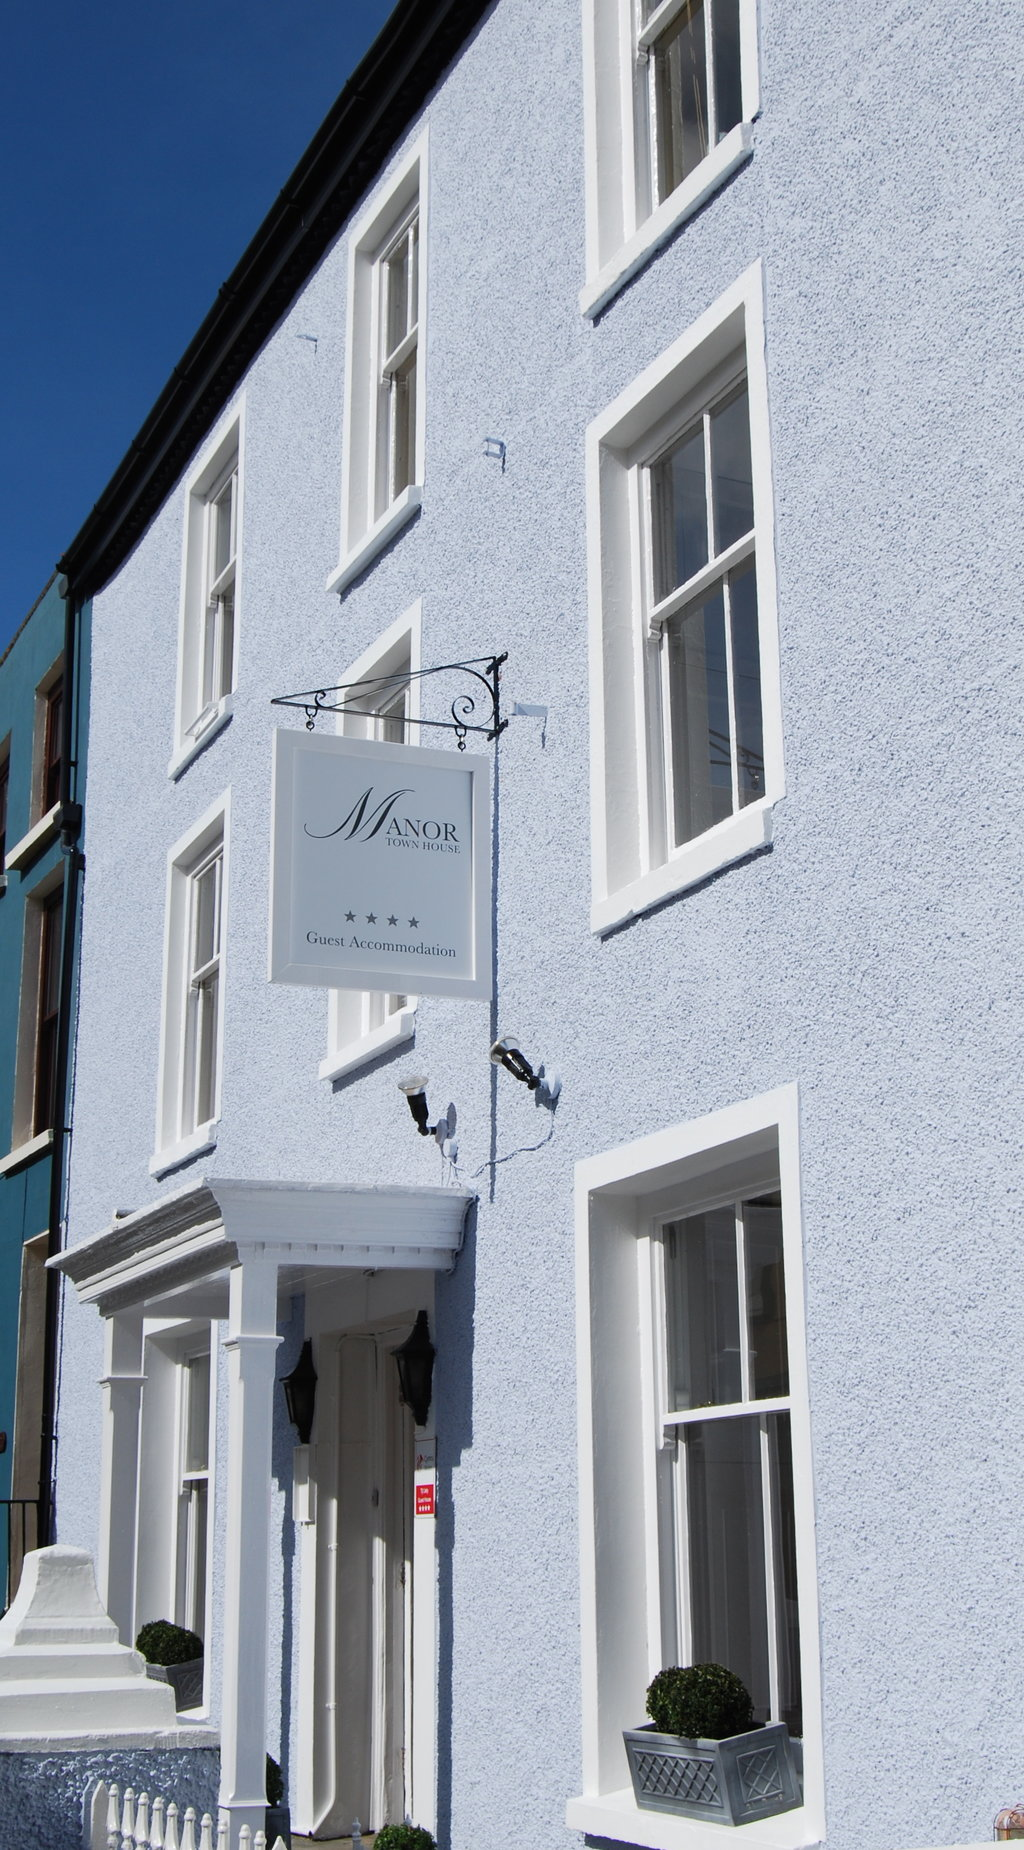 Manor Town House